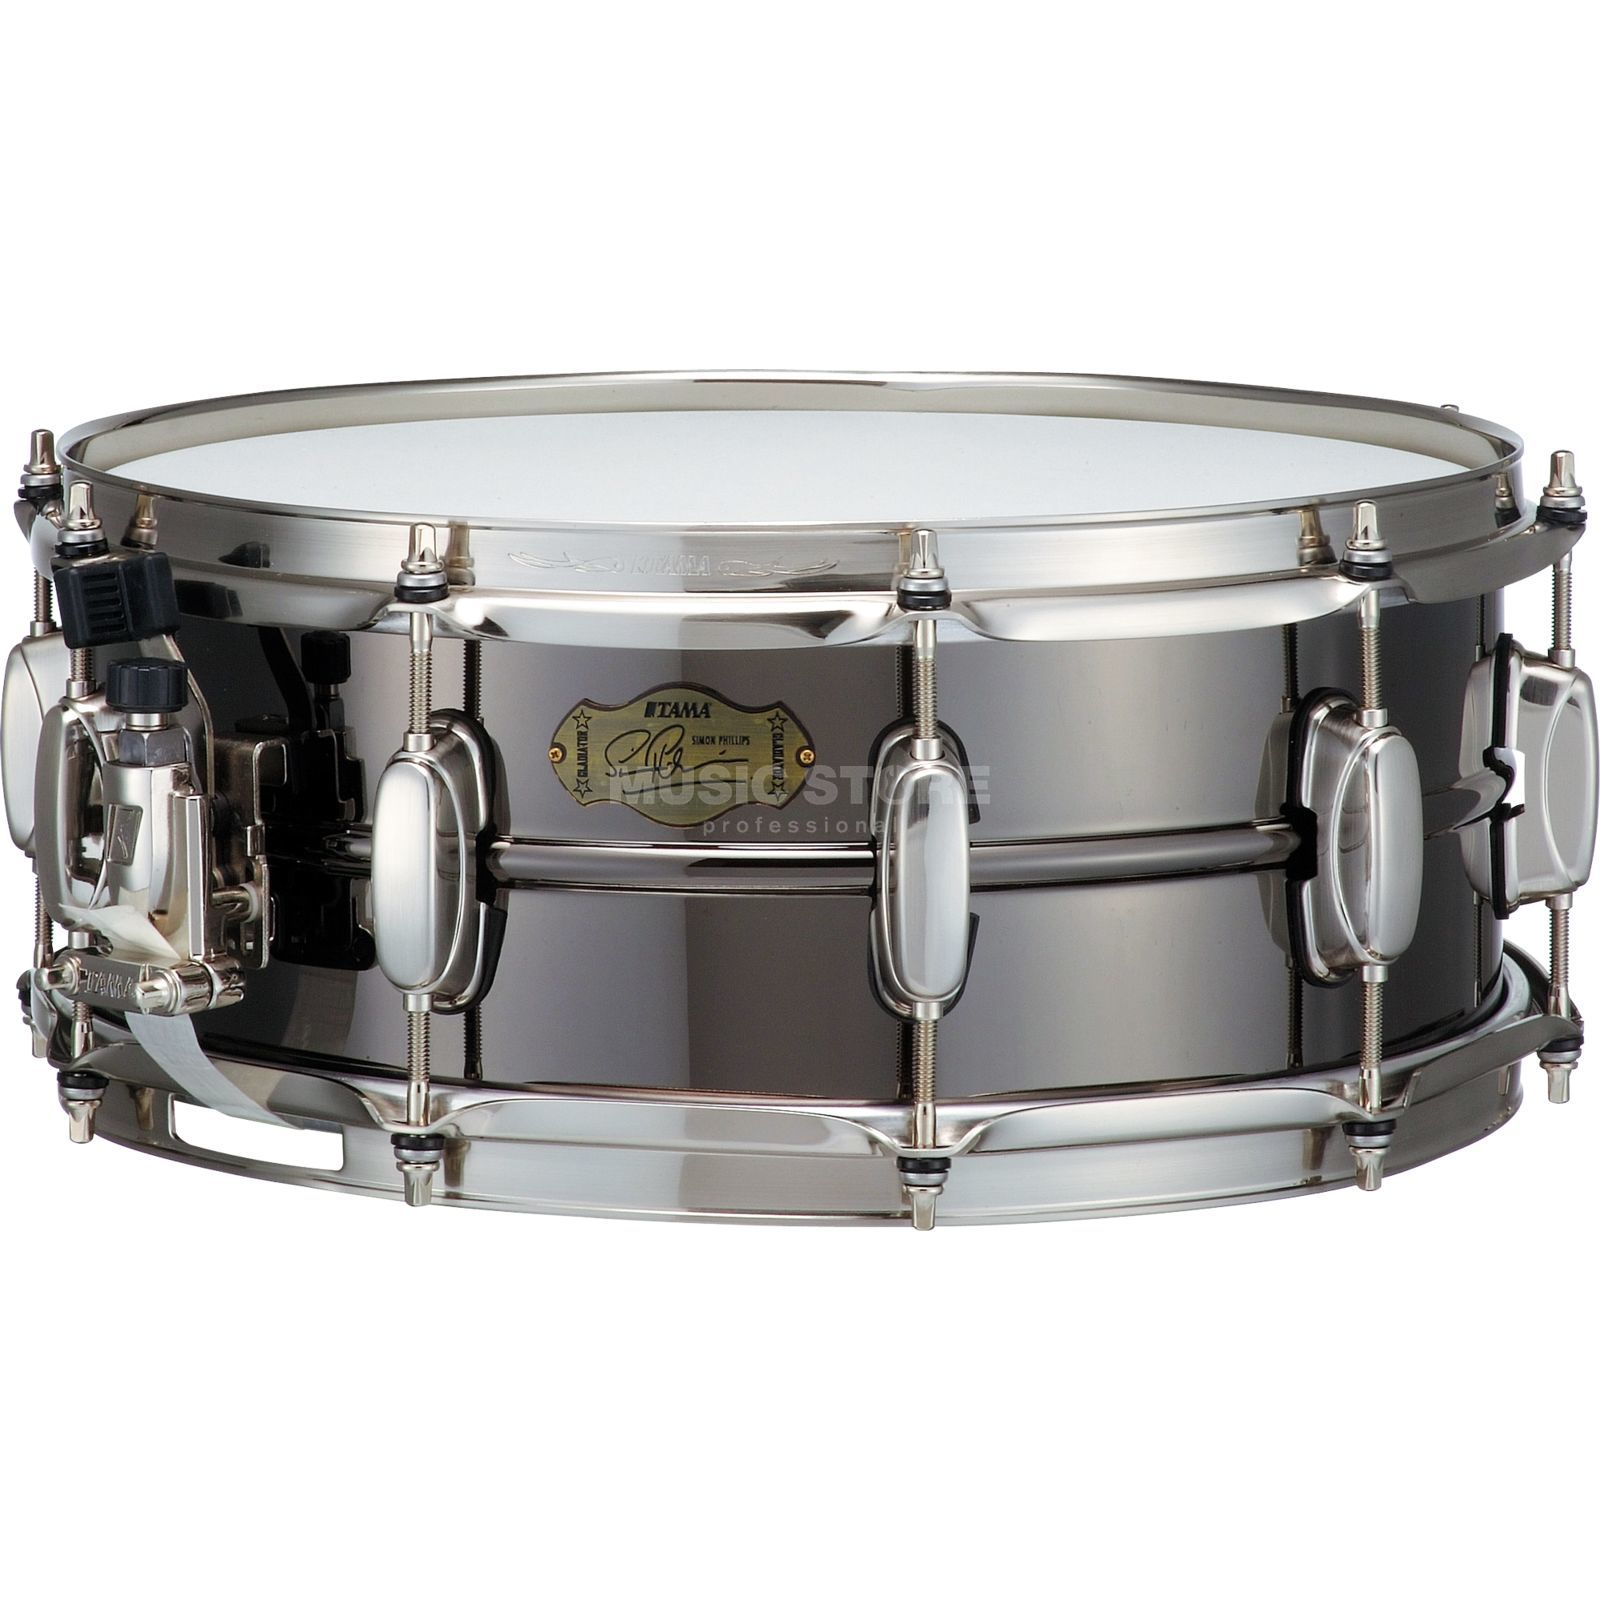 "Tama SP1455H Simon Phillips Snare, 14""x5,5"", The Gladiator Produktbild"